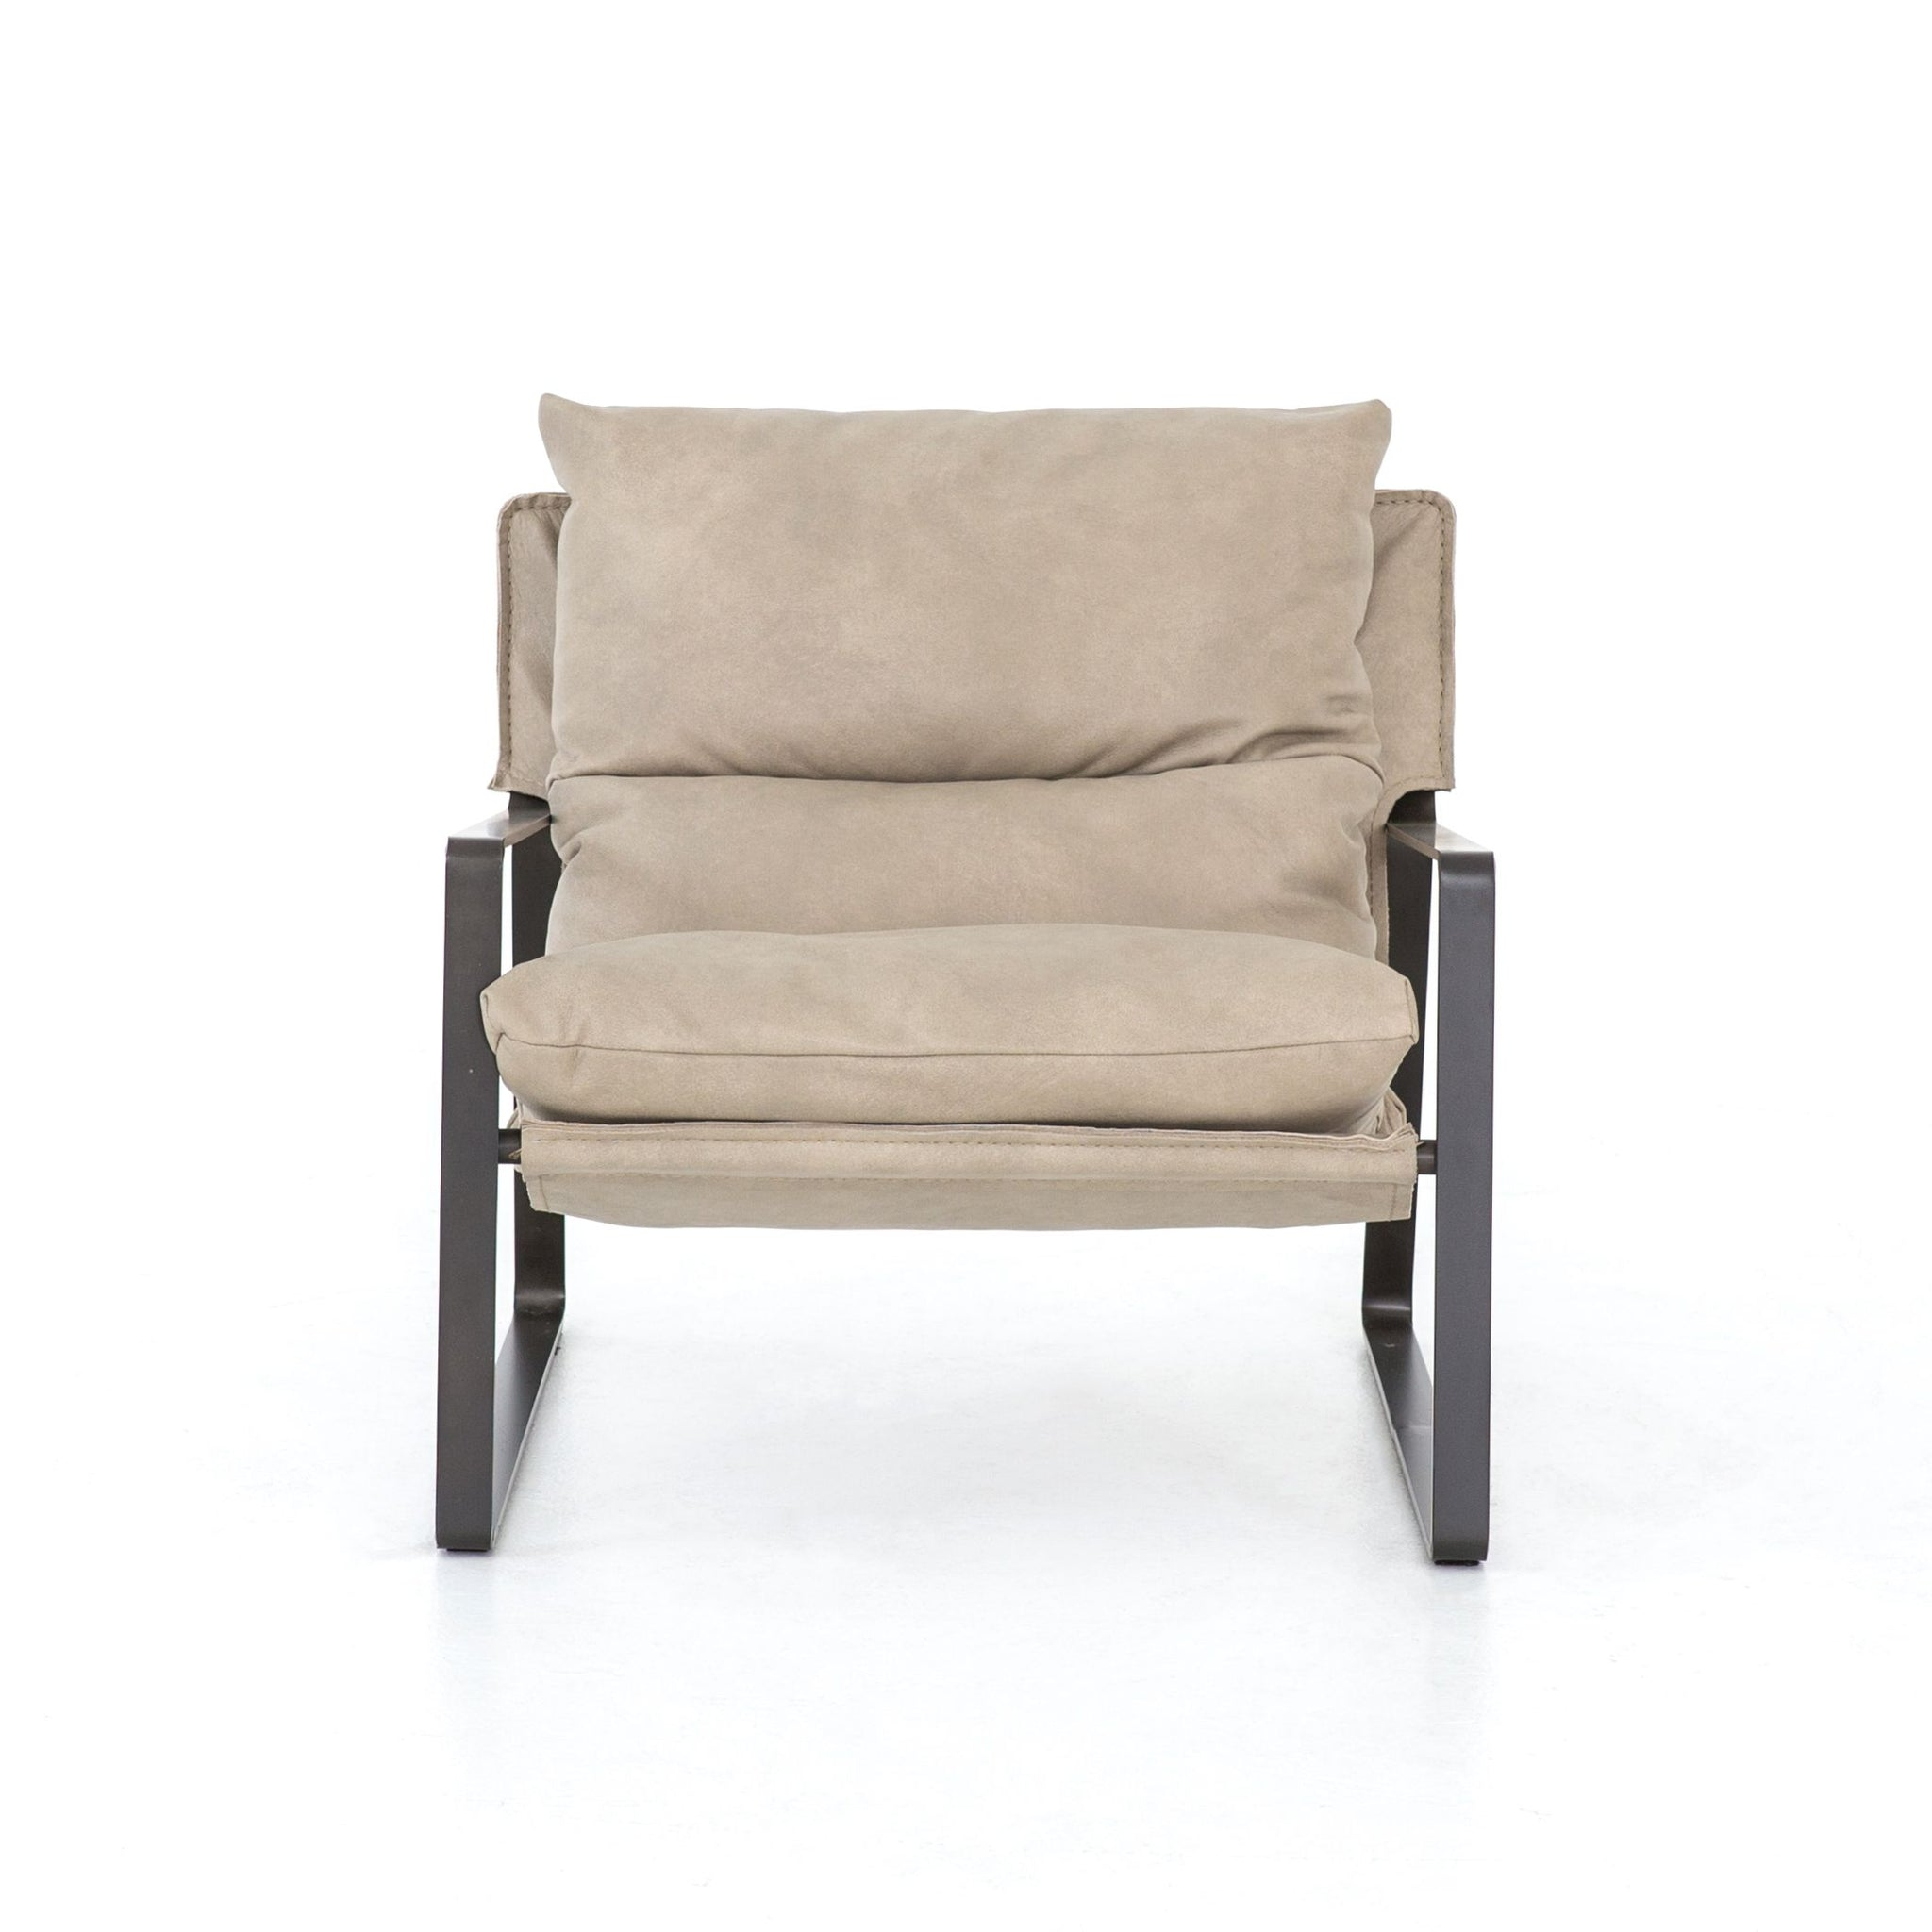 Emmett Sling Chair In Umber Natural Burke Decor